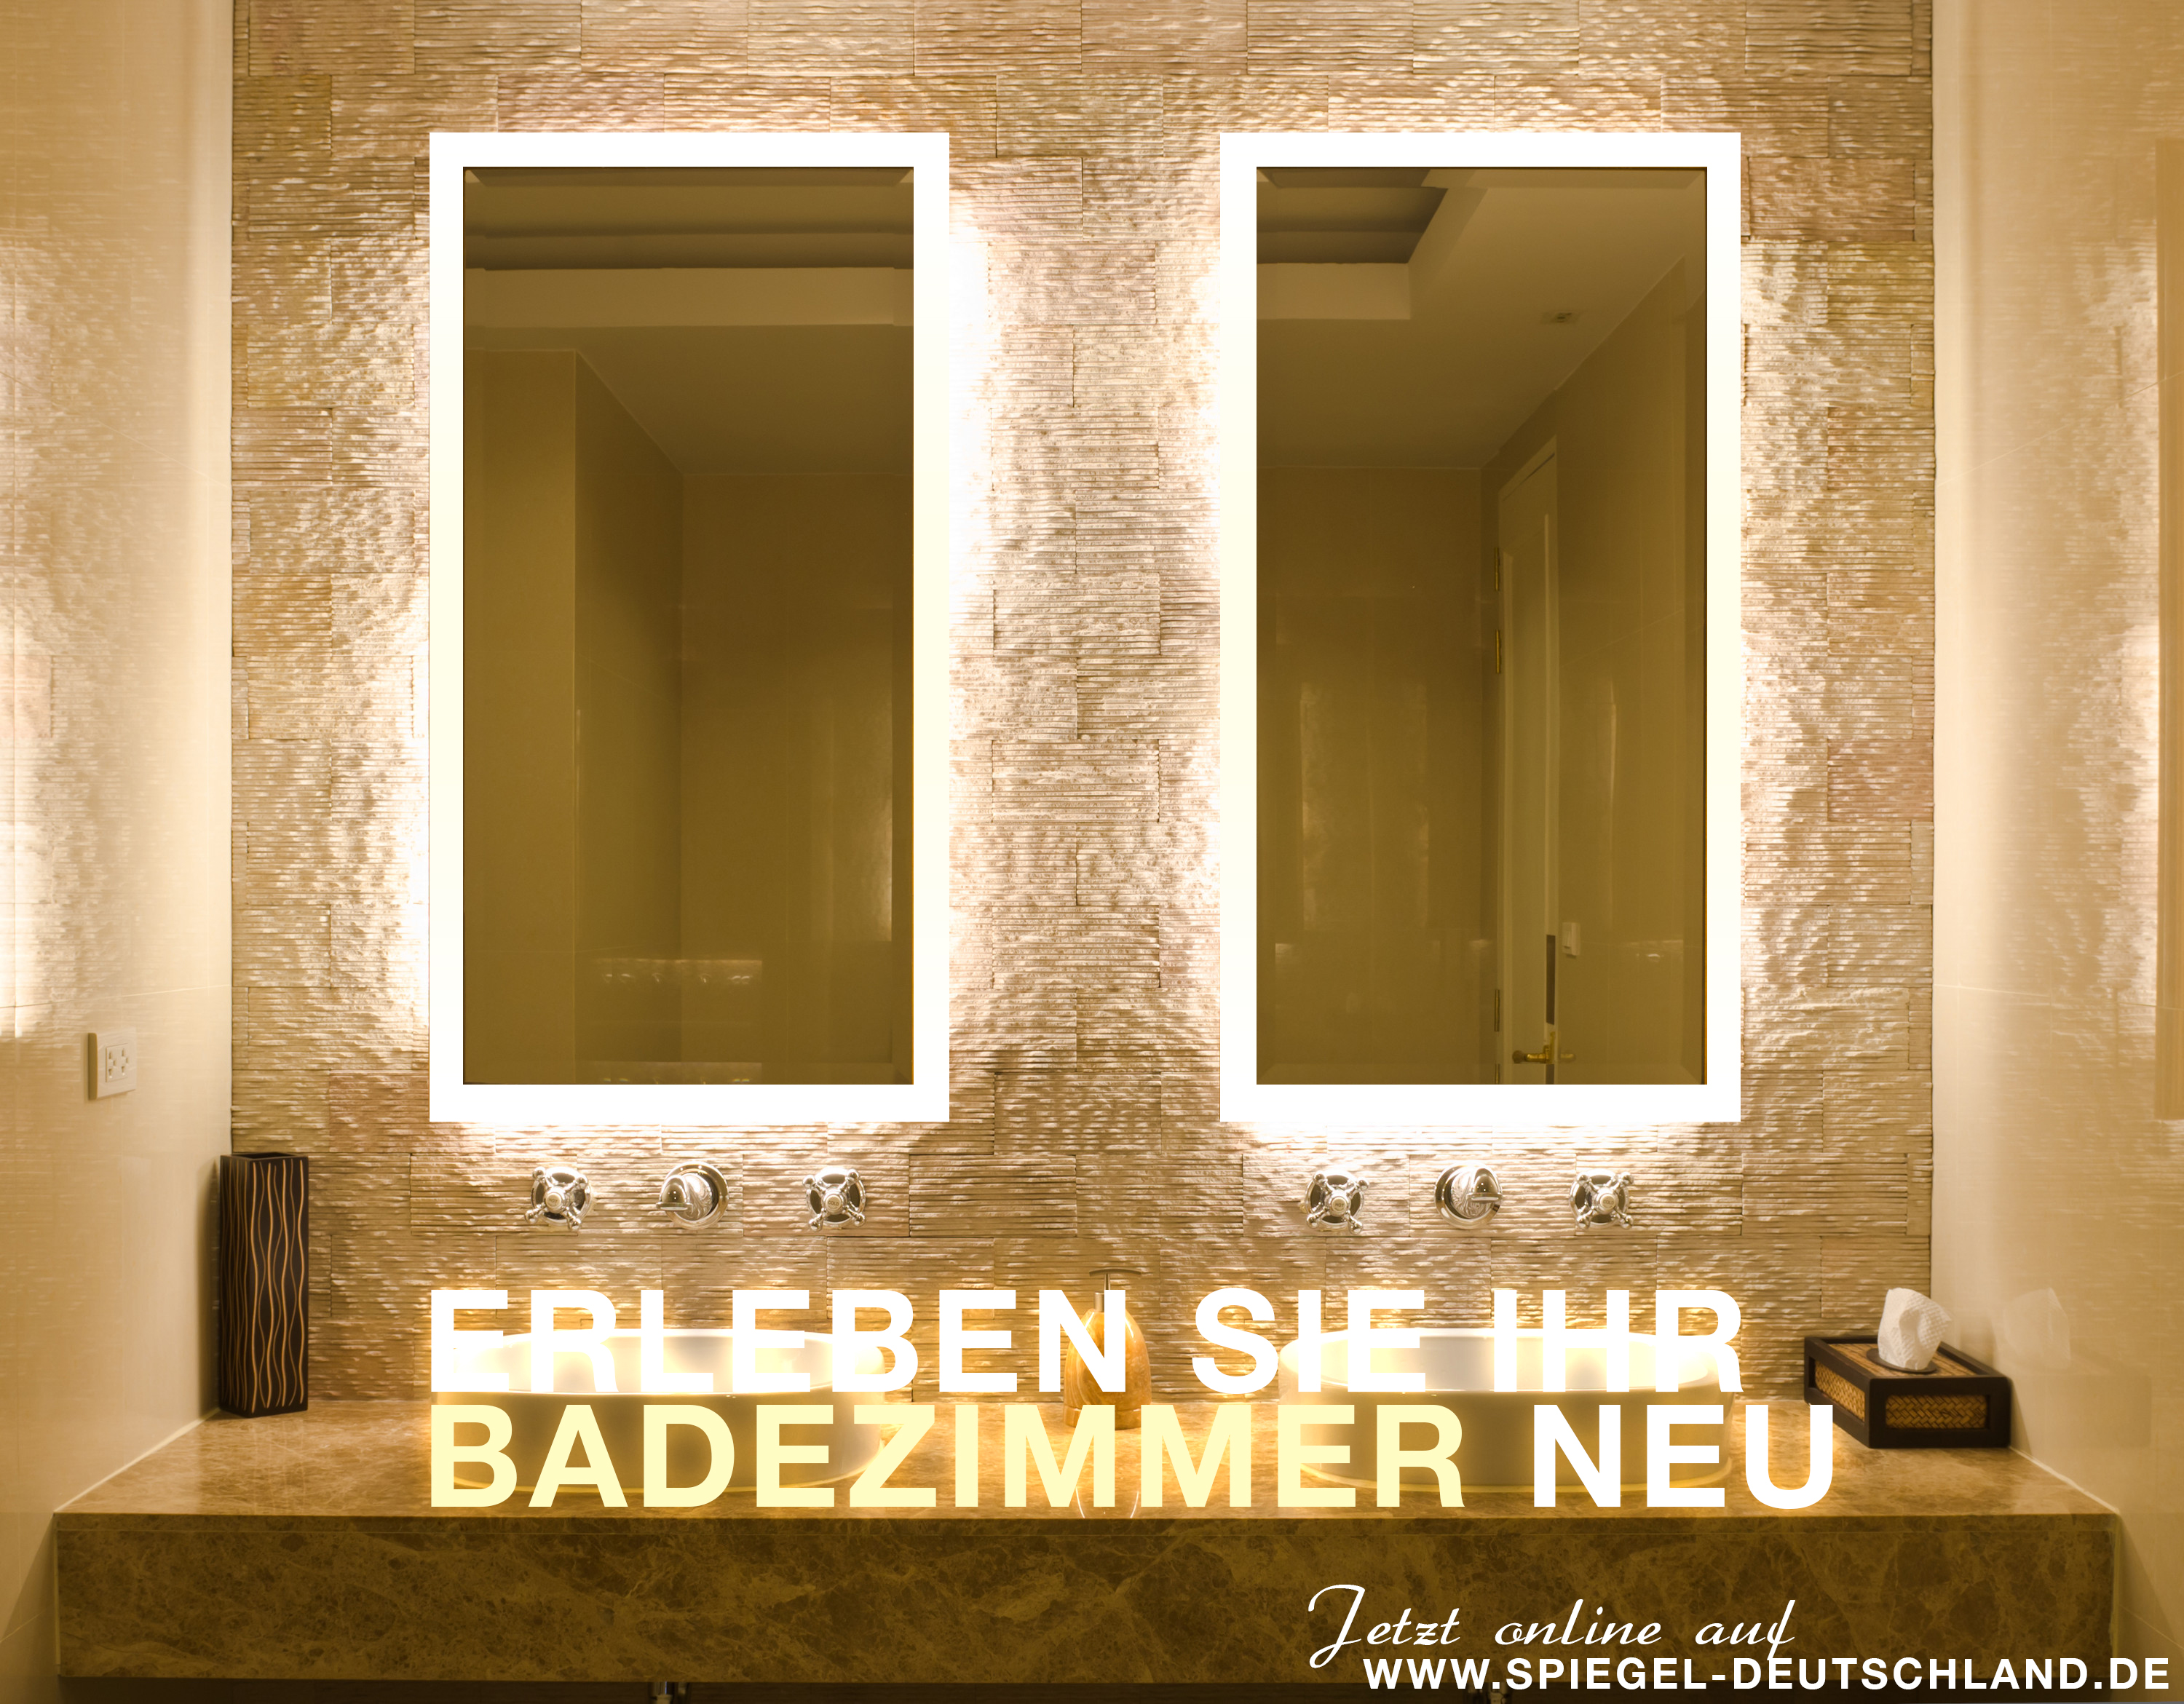 badspiegel badezimmerspiegel spiegelschrank blog. Black Bedroom Furniture Sets. Home Design Ideas